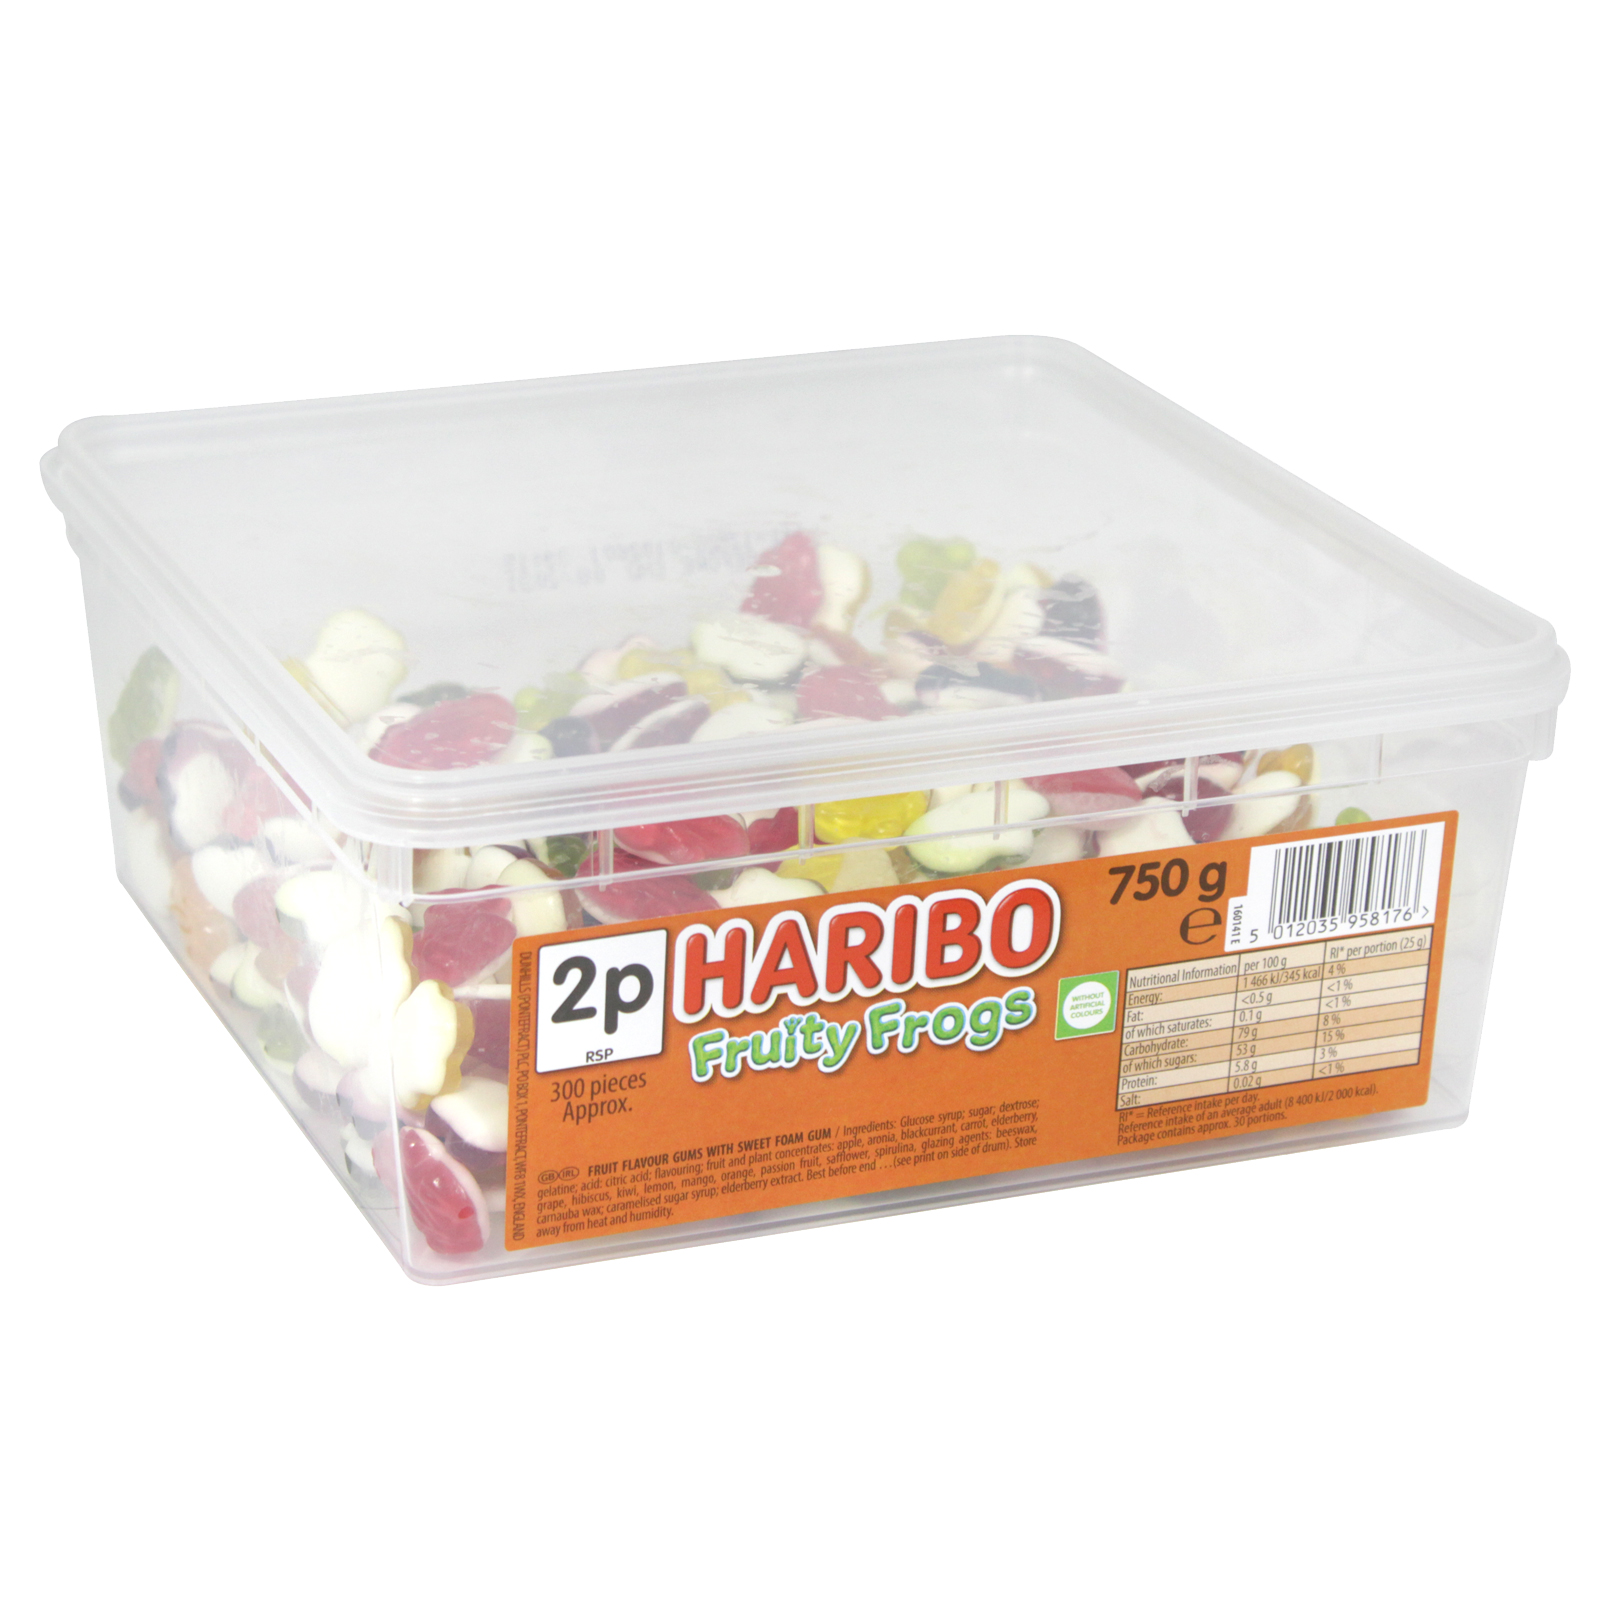 HARIBO FRUITY FROGS DRUM 750G APPROX 300 PIECES